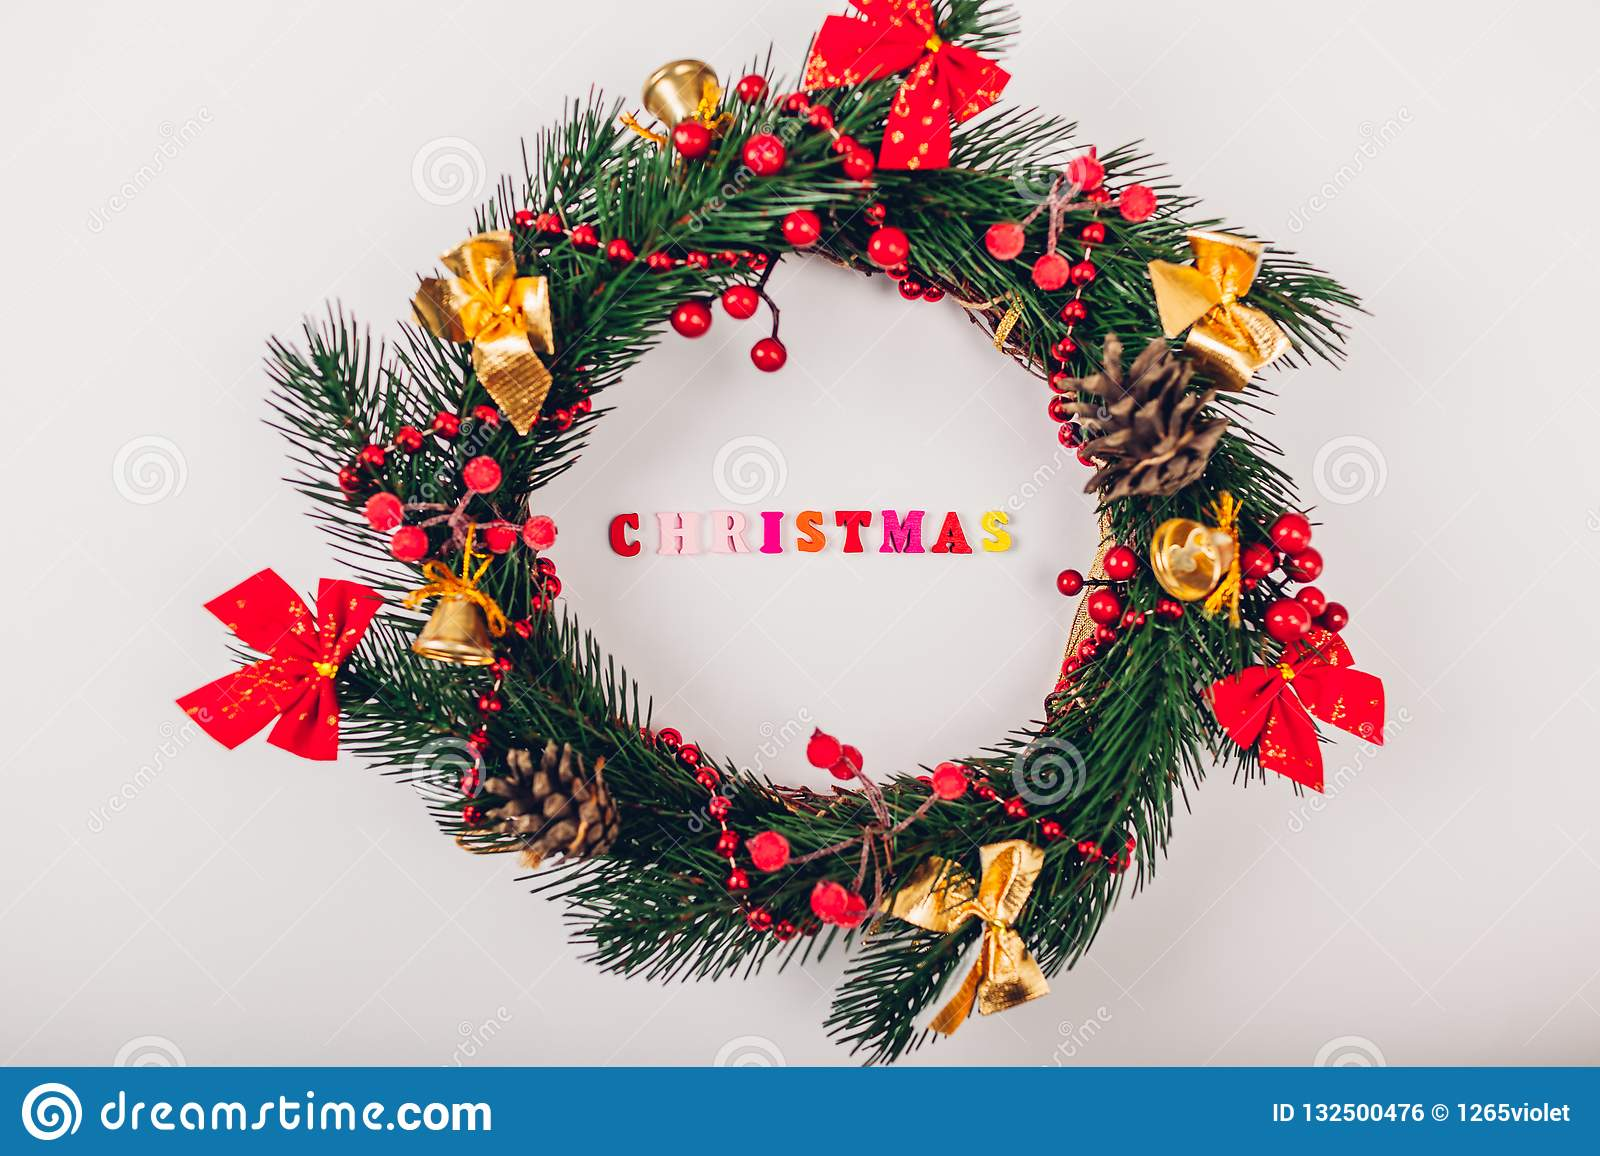 Christmas Wreath With Decoration On White Background Christmas